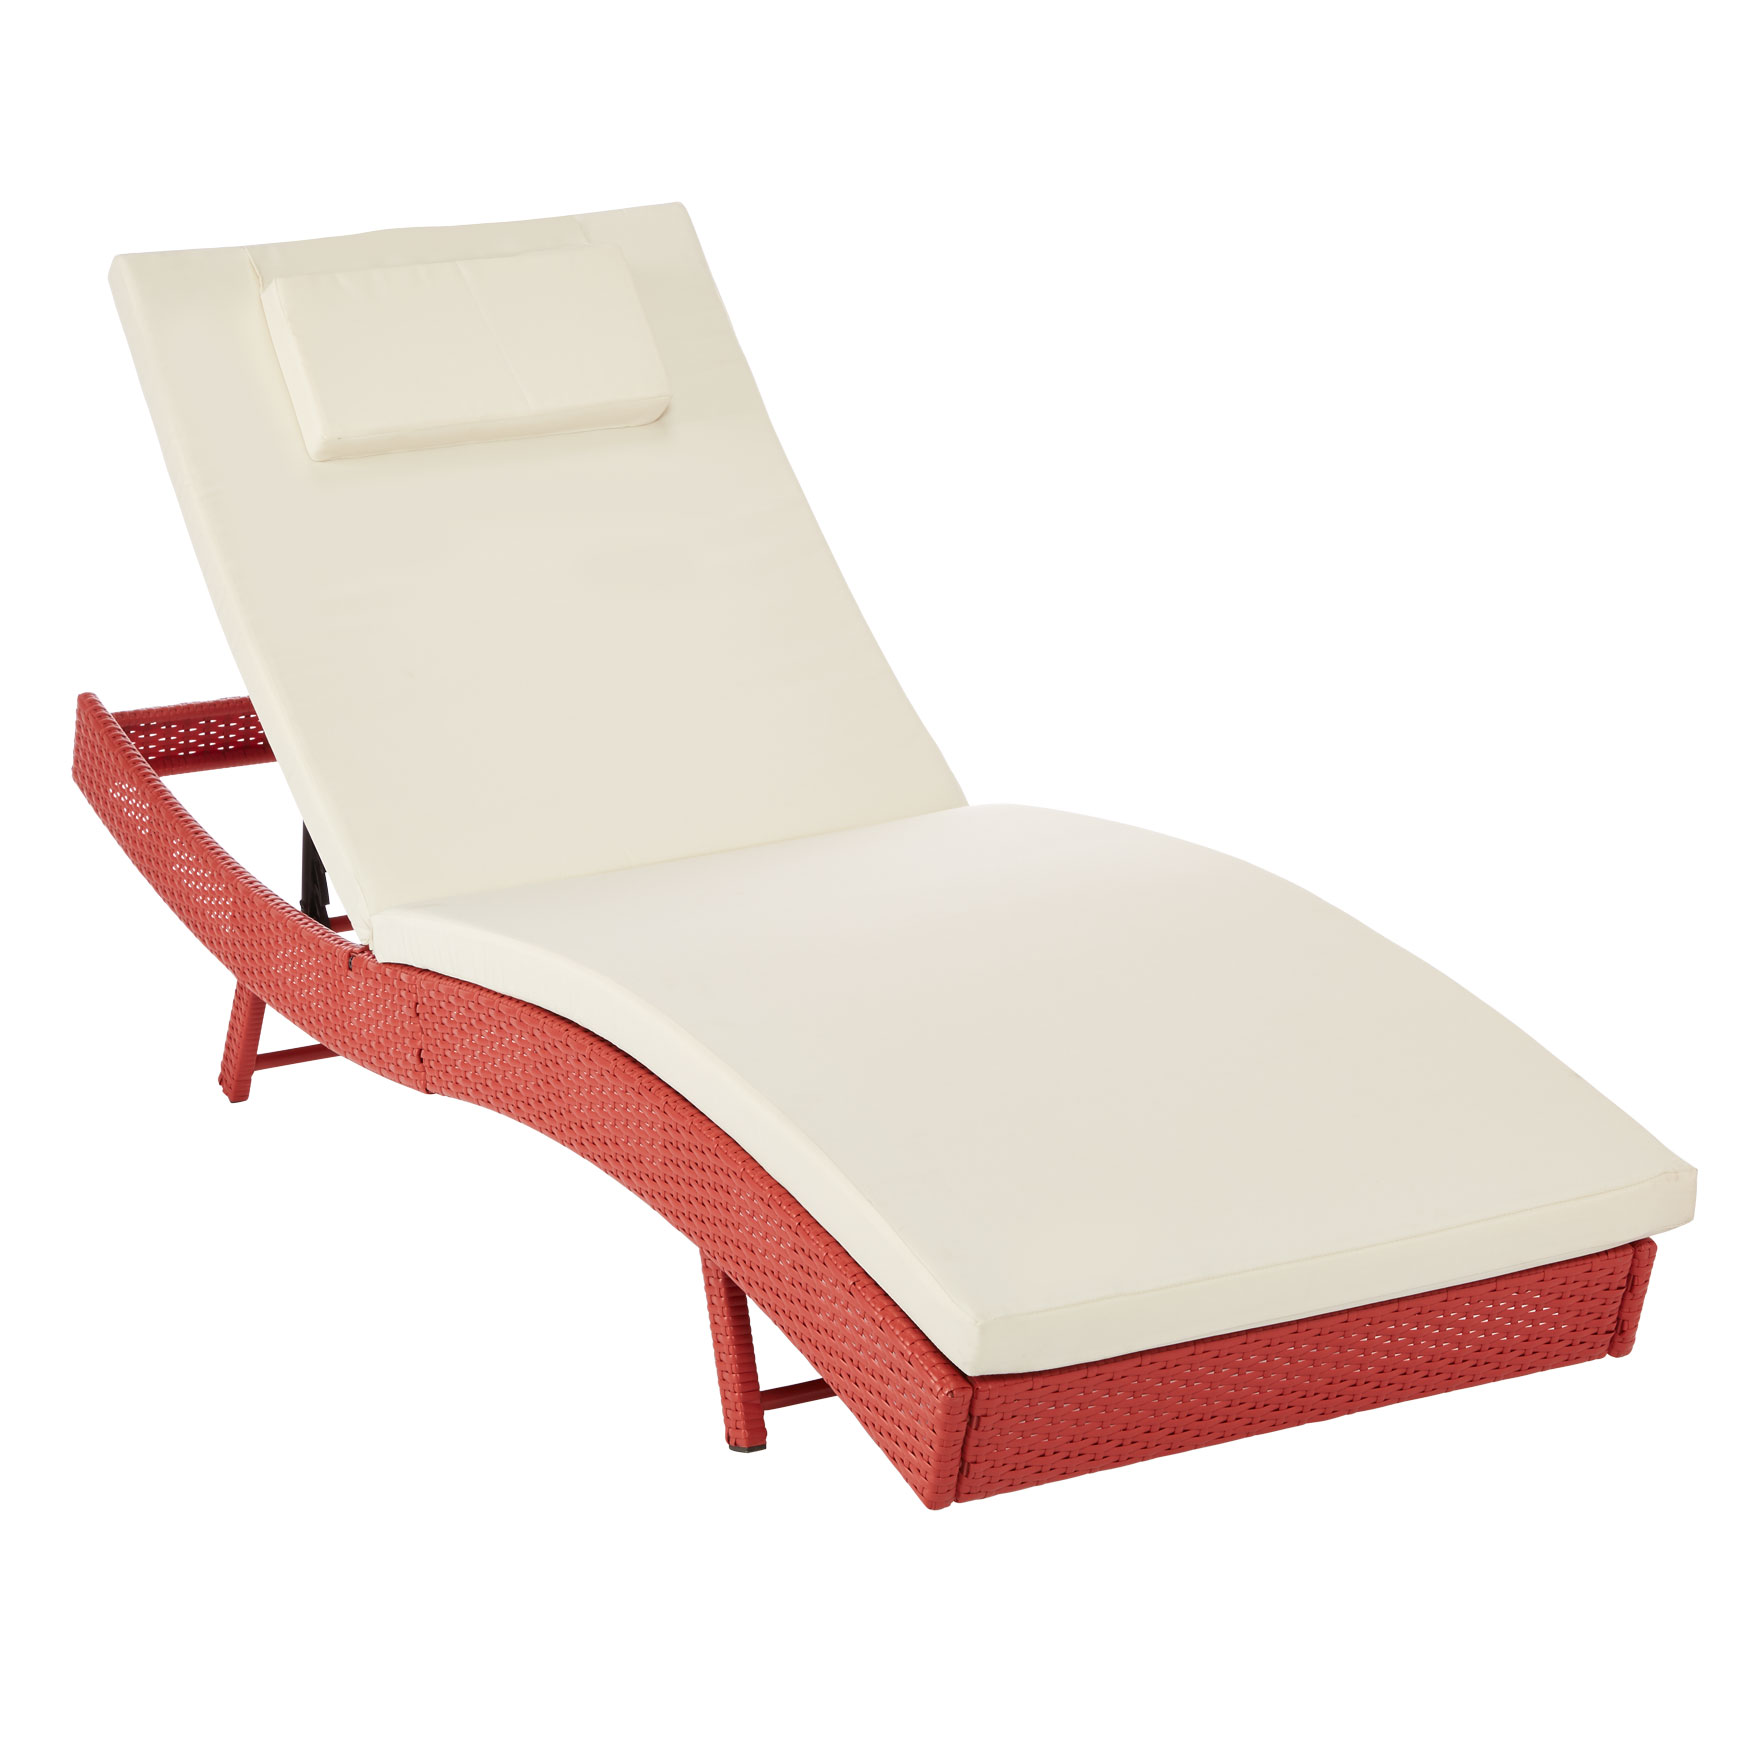 Santiago Chaise Lounge,